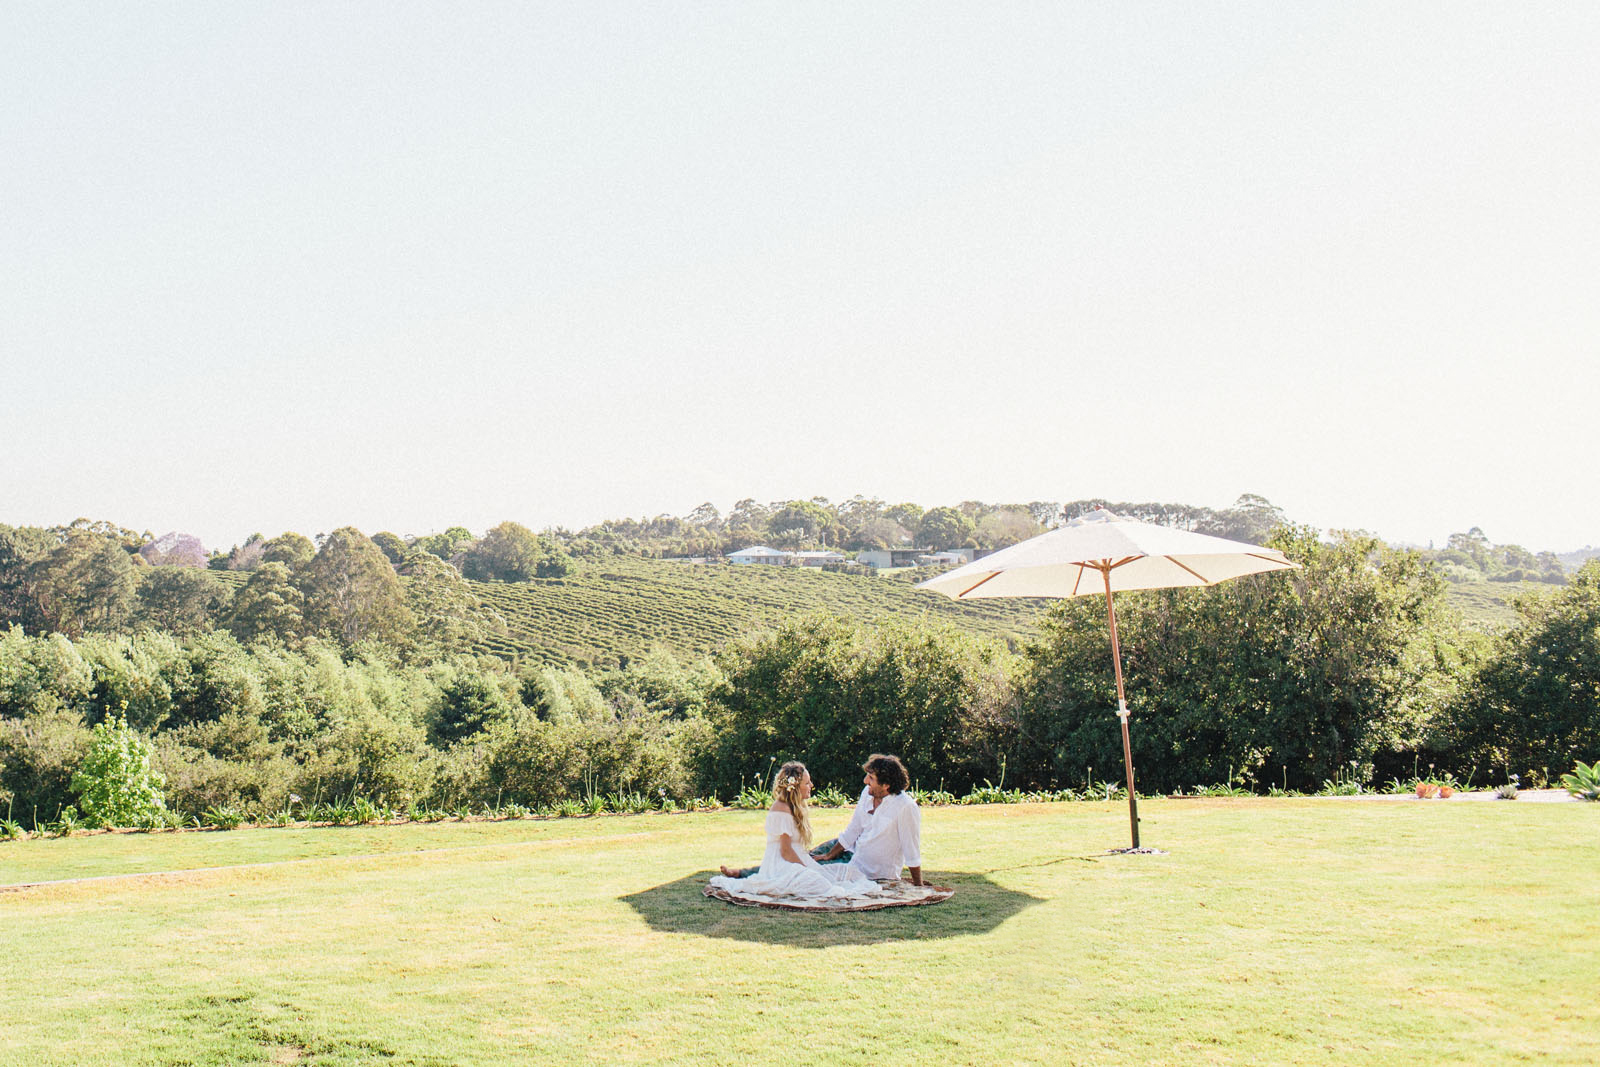 Lizzy + Johnny | Byron Bay Wedding Venue | The Events Lounge - Byron Bay Wedding Planner and Stylist - www.theeventslounge.com.au